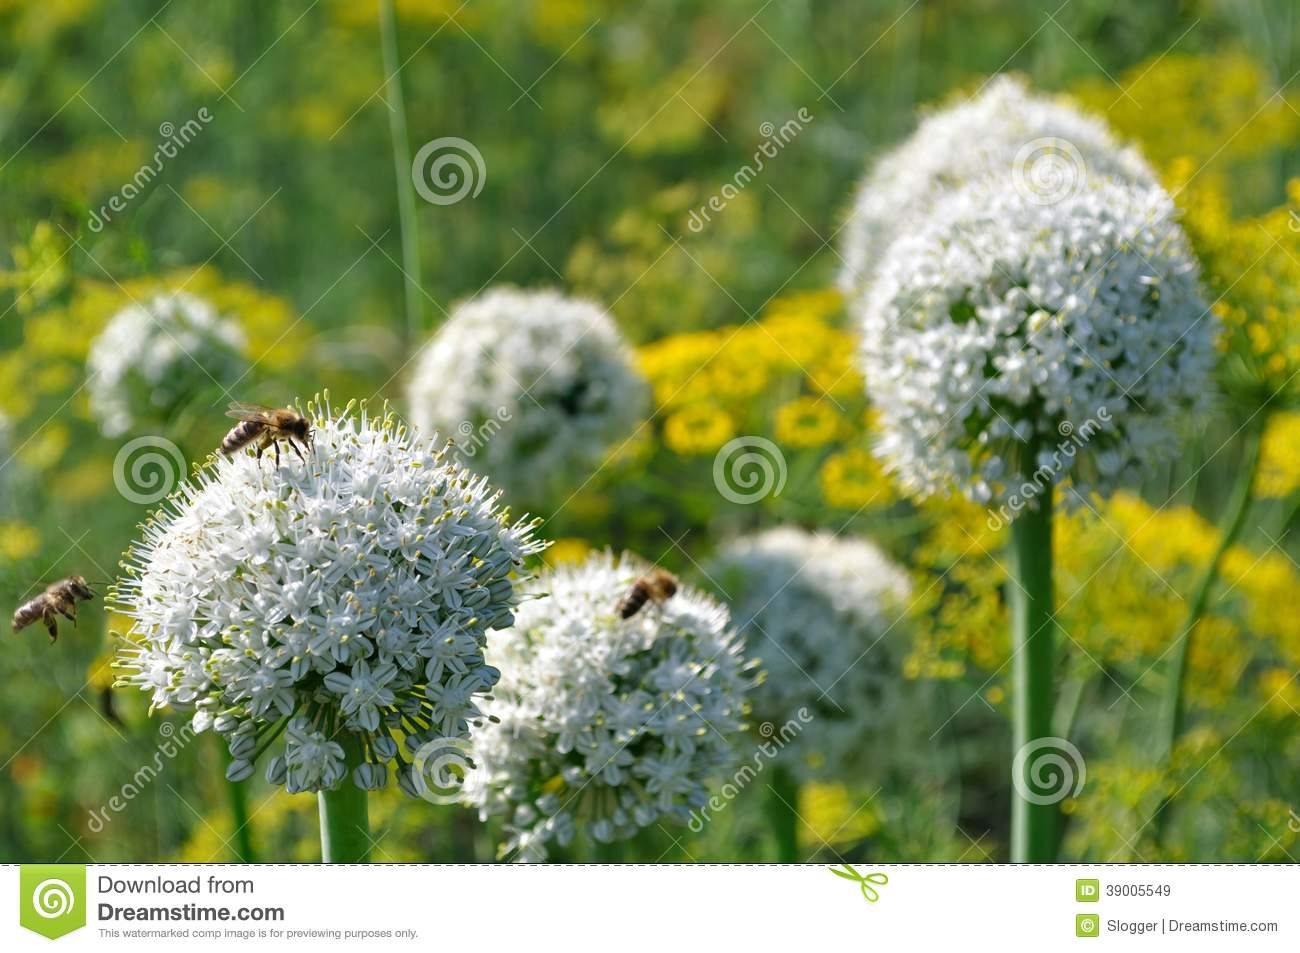 Working bees on the blooming onion and dill